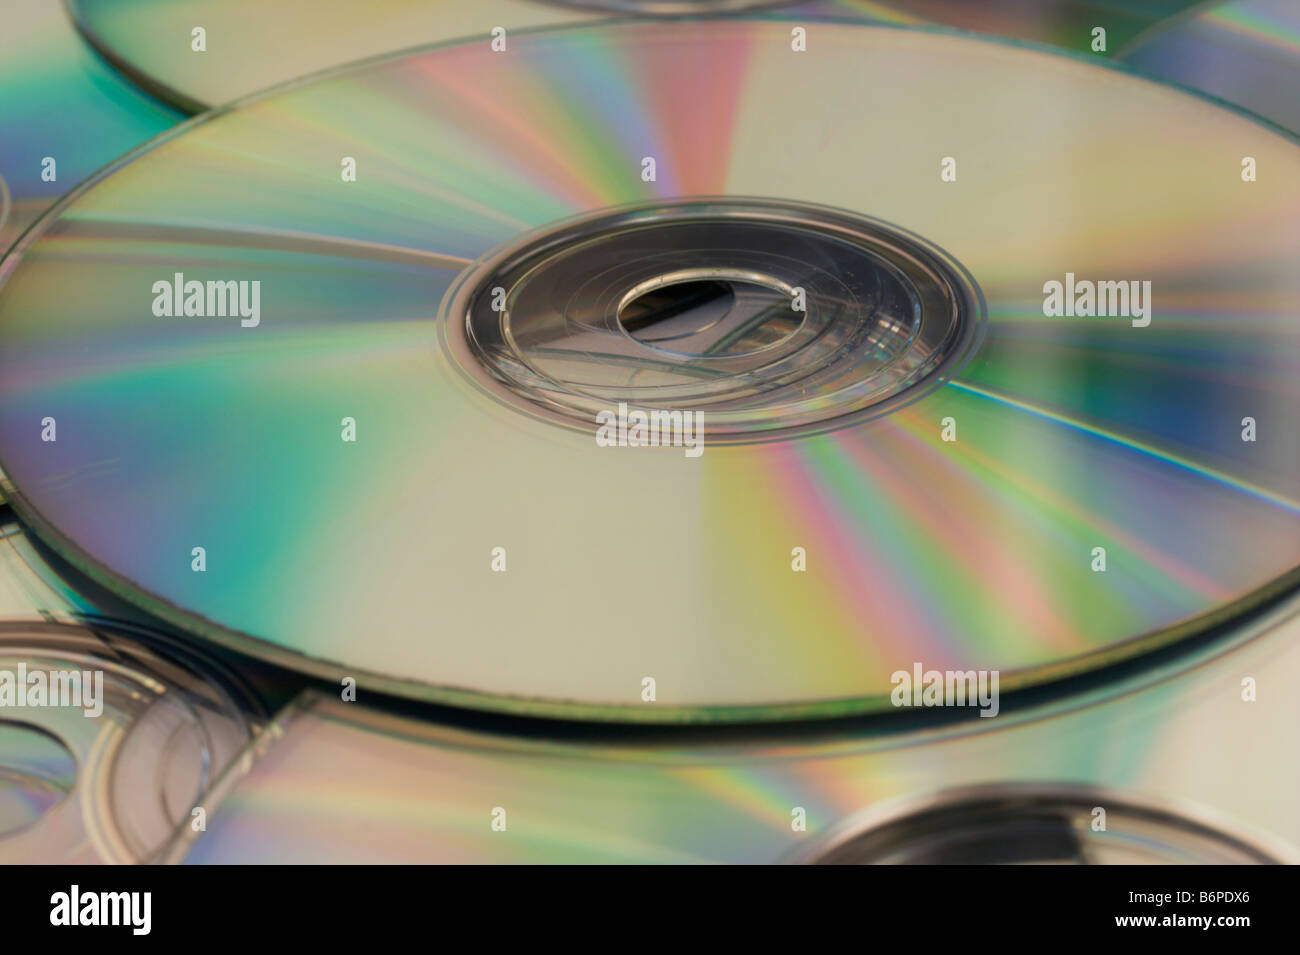 Pile of recordable CDs or DVDs - Stock Image